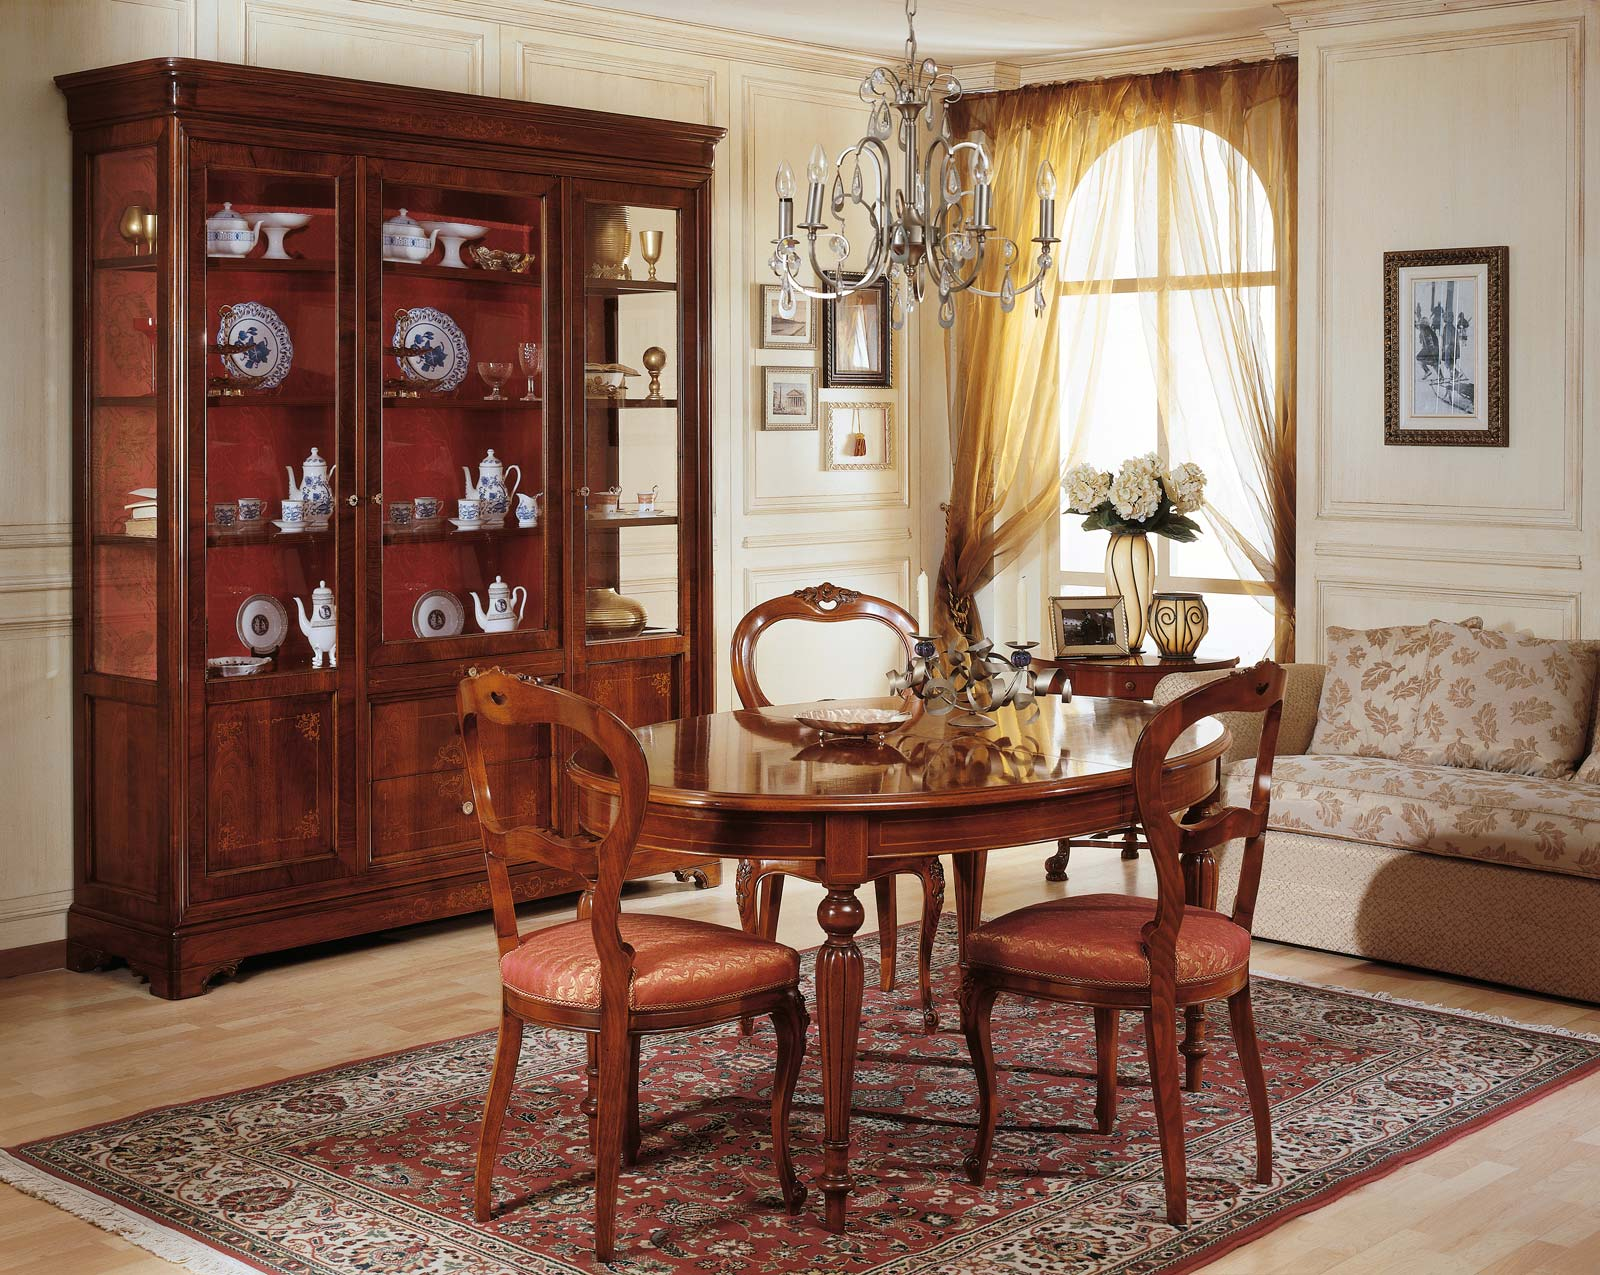 Dining room french 19th century table and glass showcase  : 215 from www.vimercatimeda.com size 1600 x 1275 jpeg 359kB